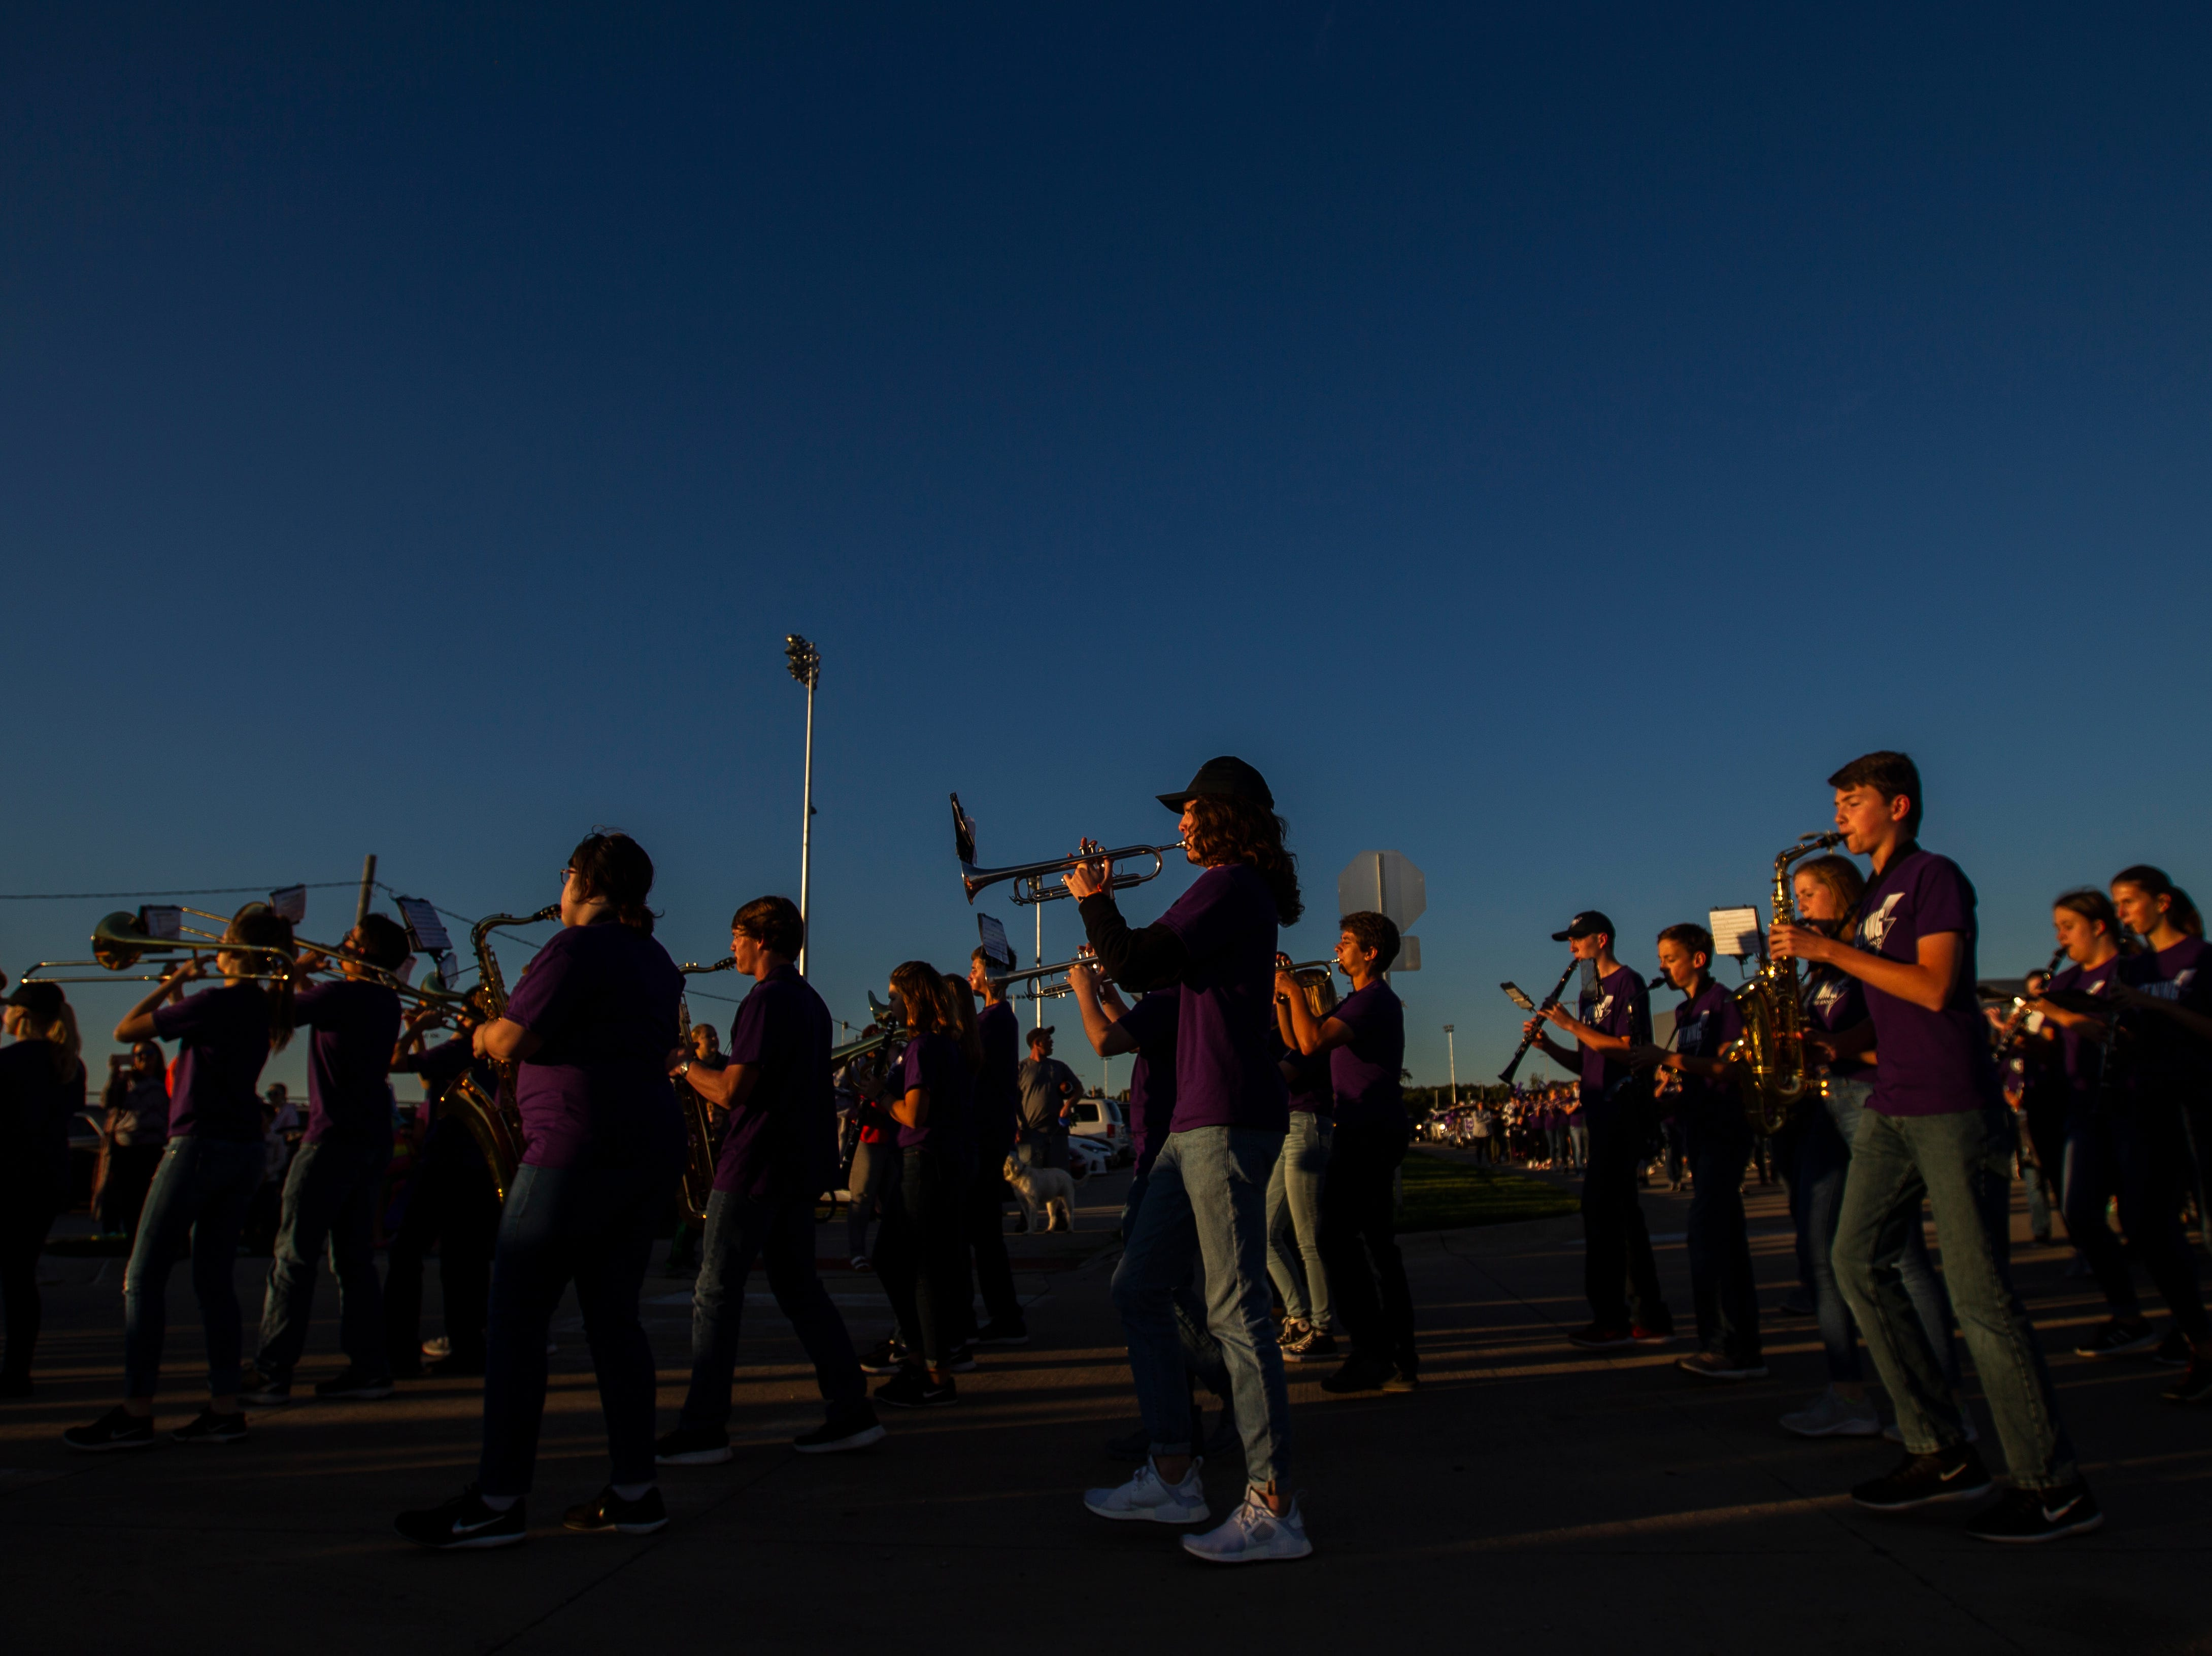 Members of the marching band perform during Liberty's homecoming parade on Wednesday, Sept. 26, 2018, in North Liberty, Iowa.